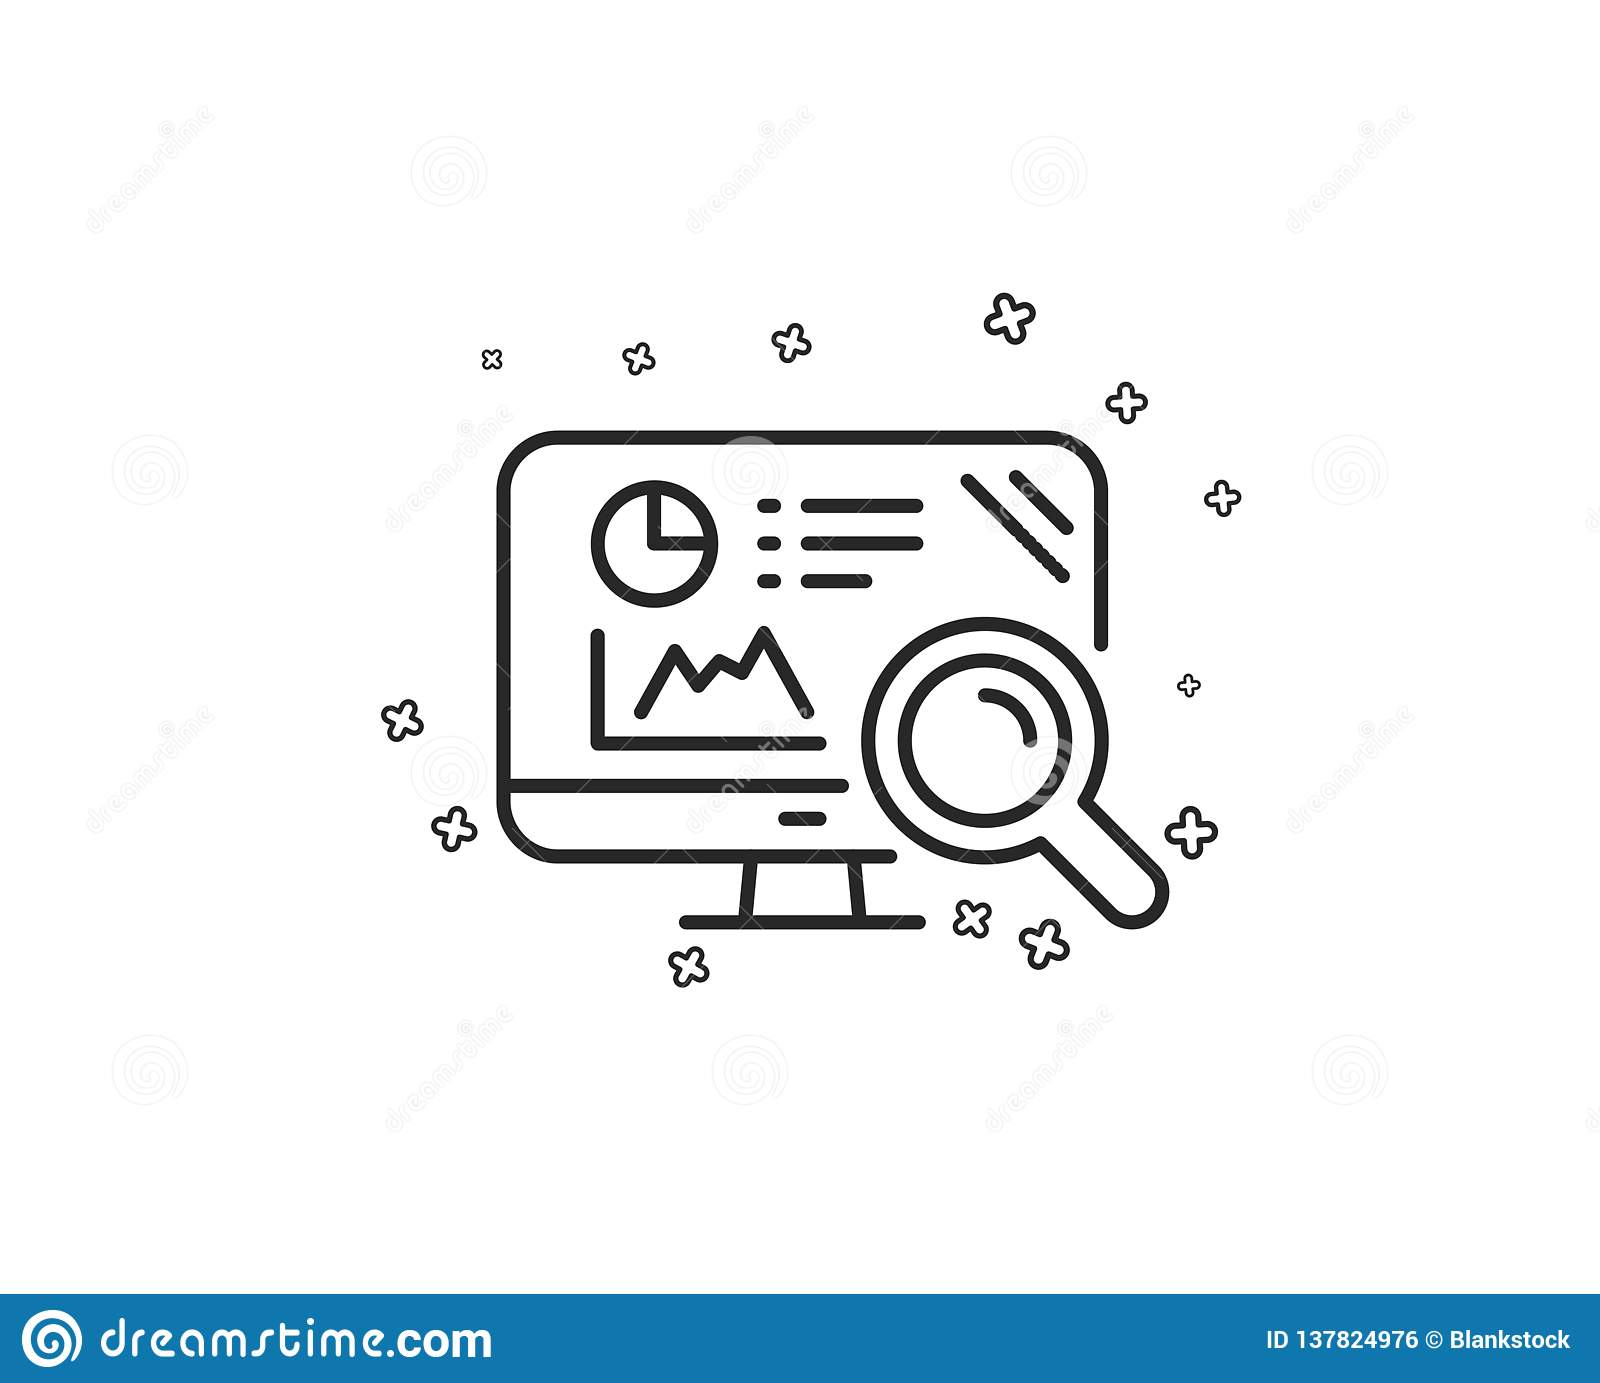 Seo Statistics Line Icon  Search Engine Sign  Vector Stock